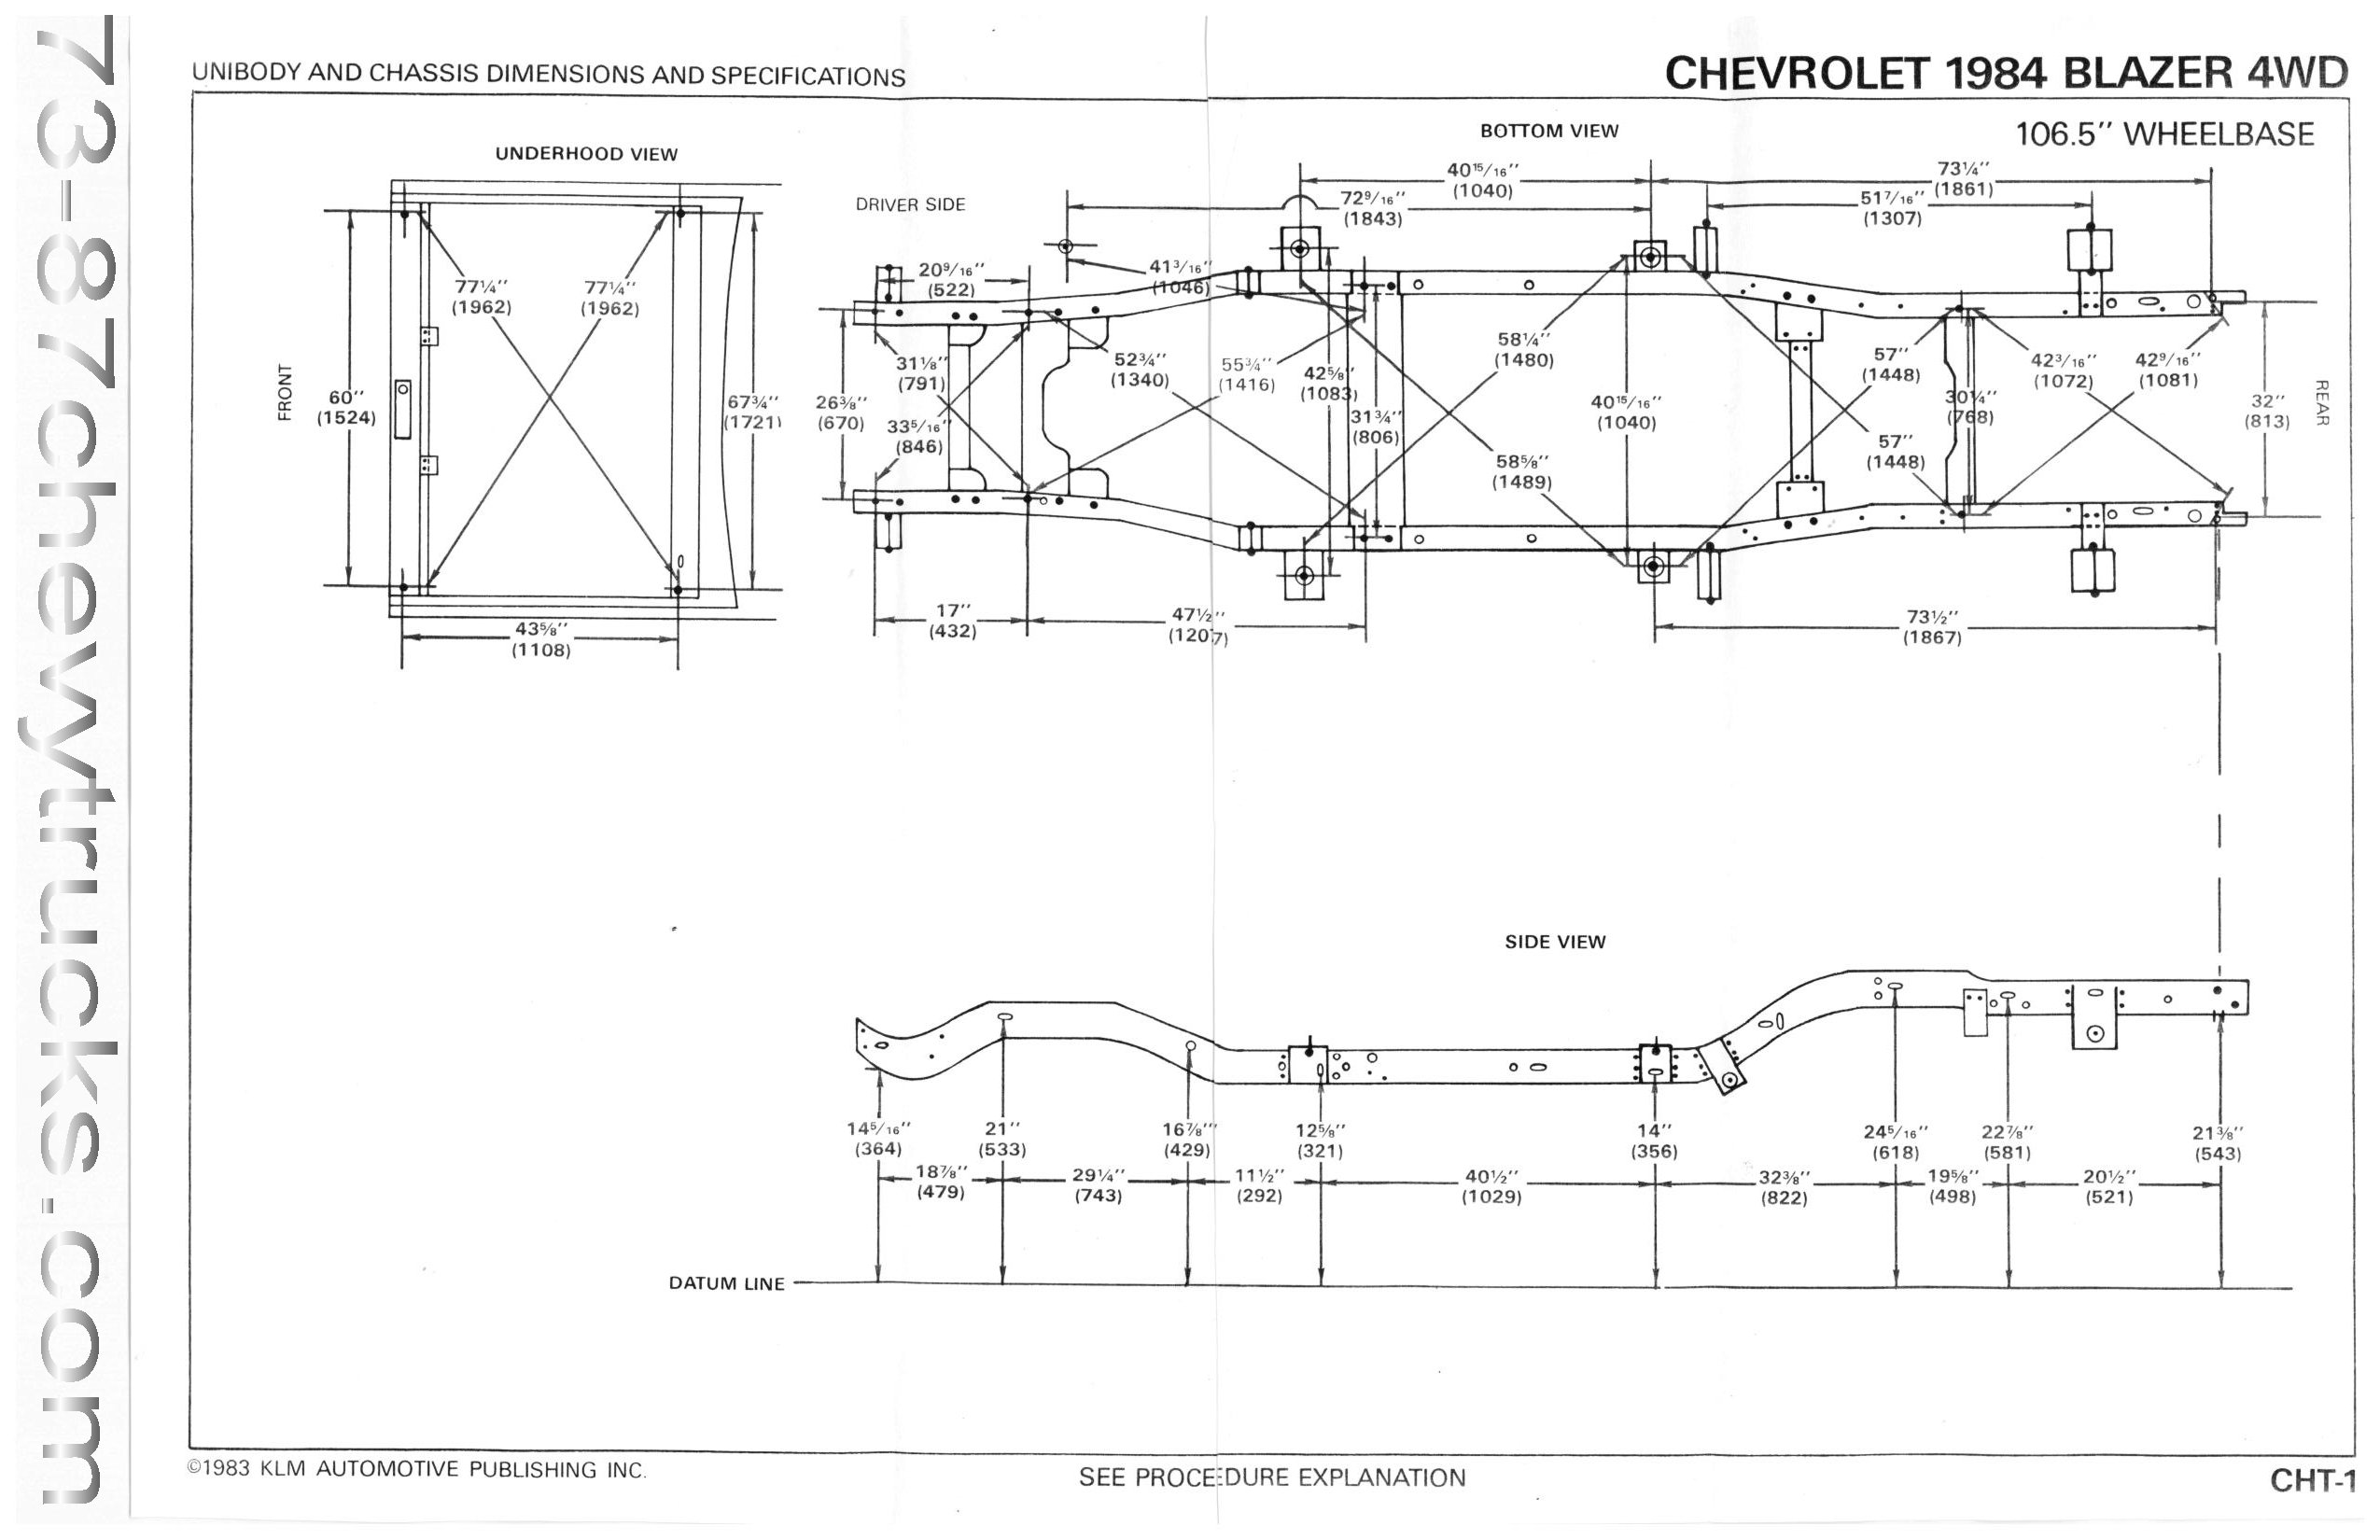 87 chevy truck wiring diagram energy level for nitrogen pickup get free image about